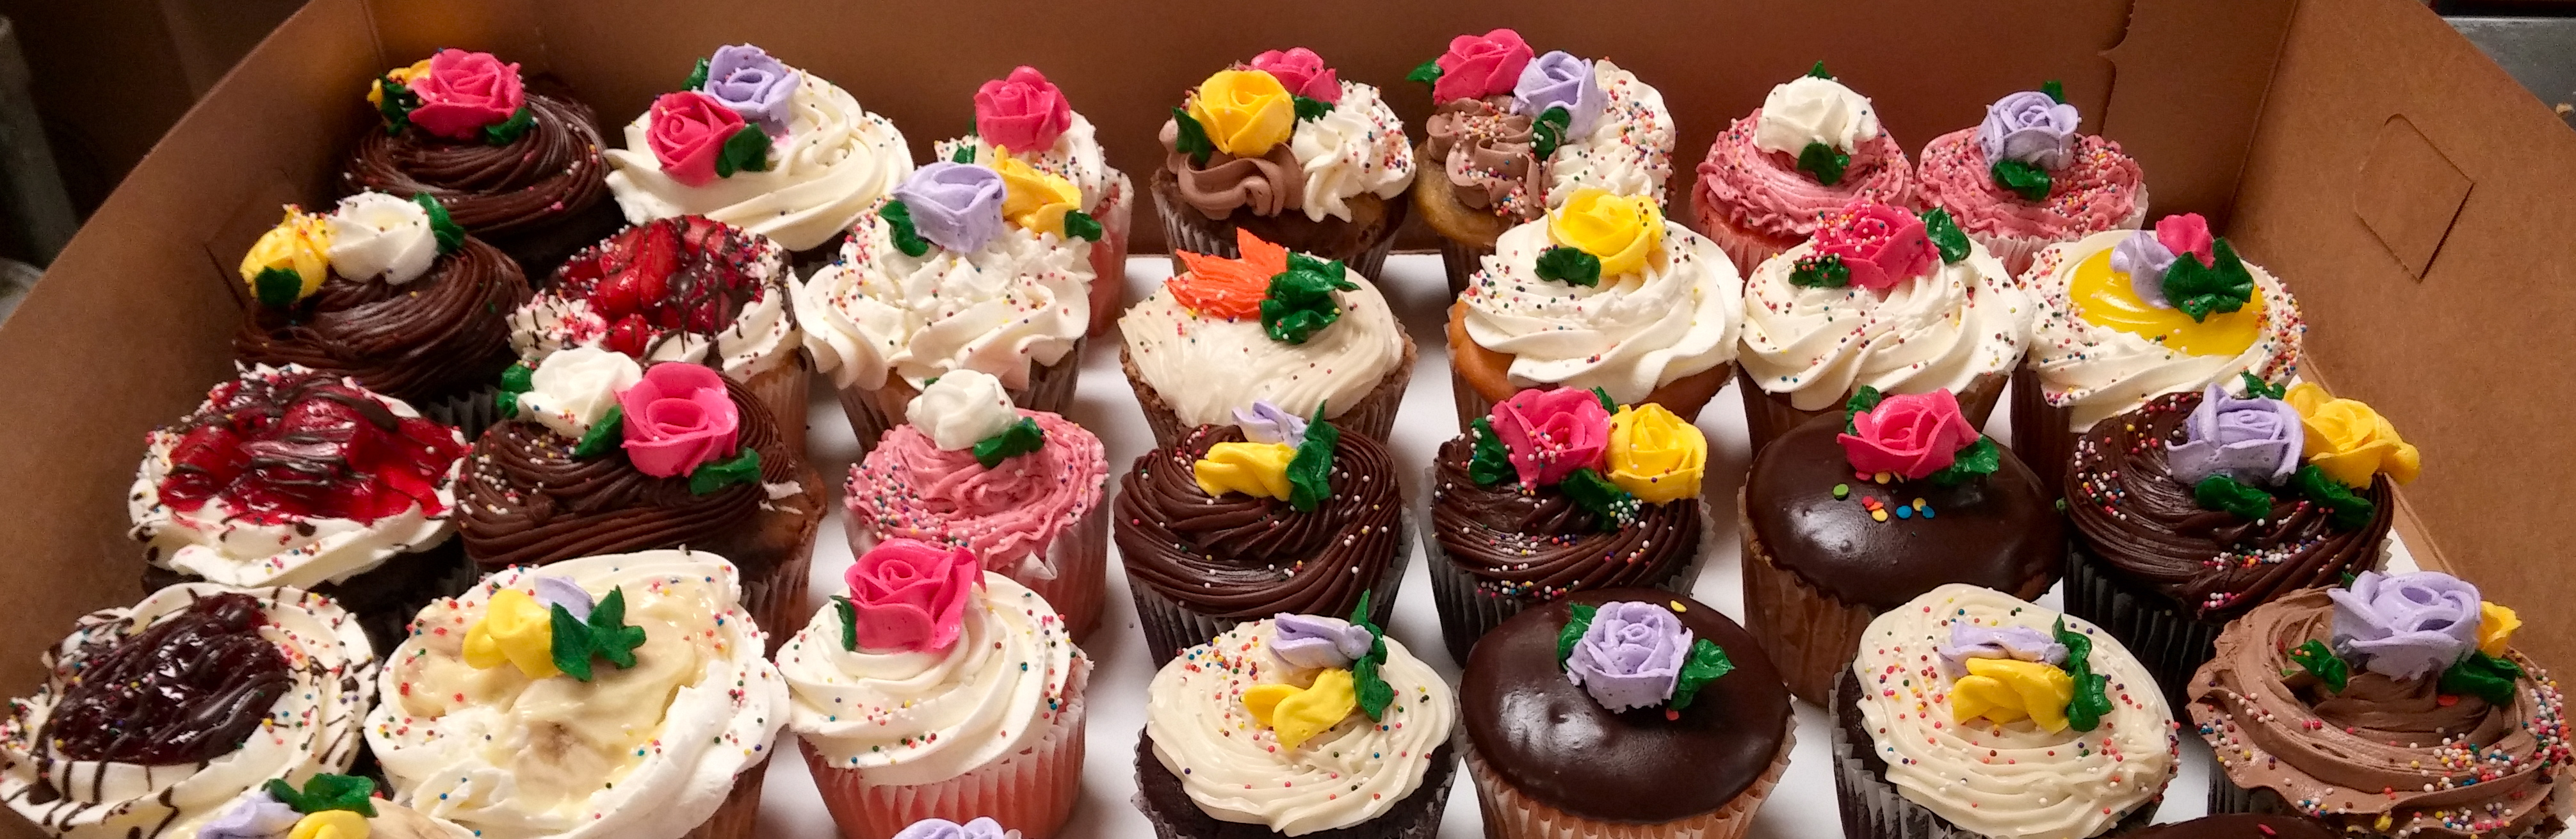 Fancy Large Cup Cakes